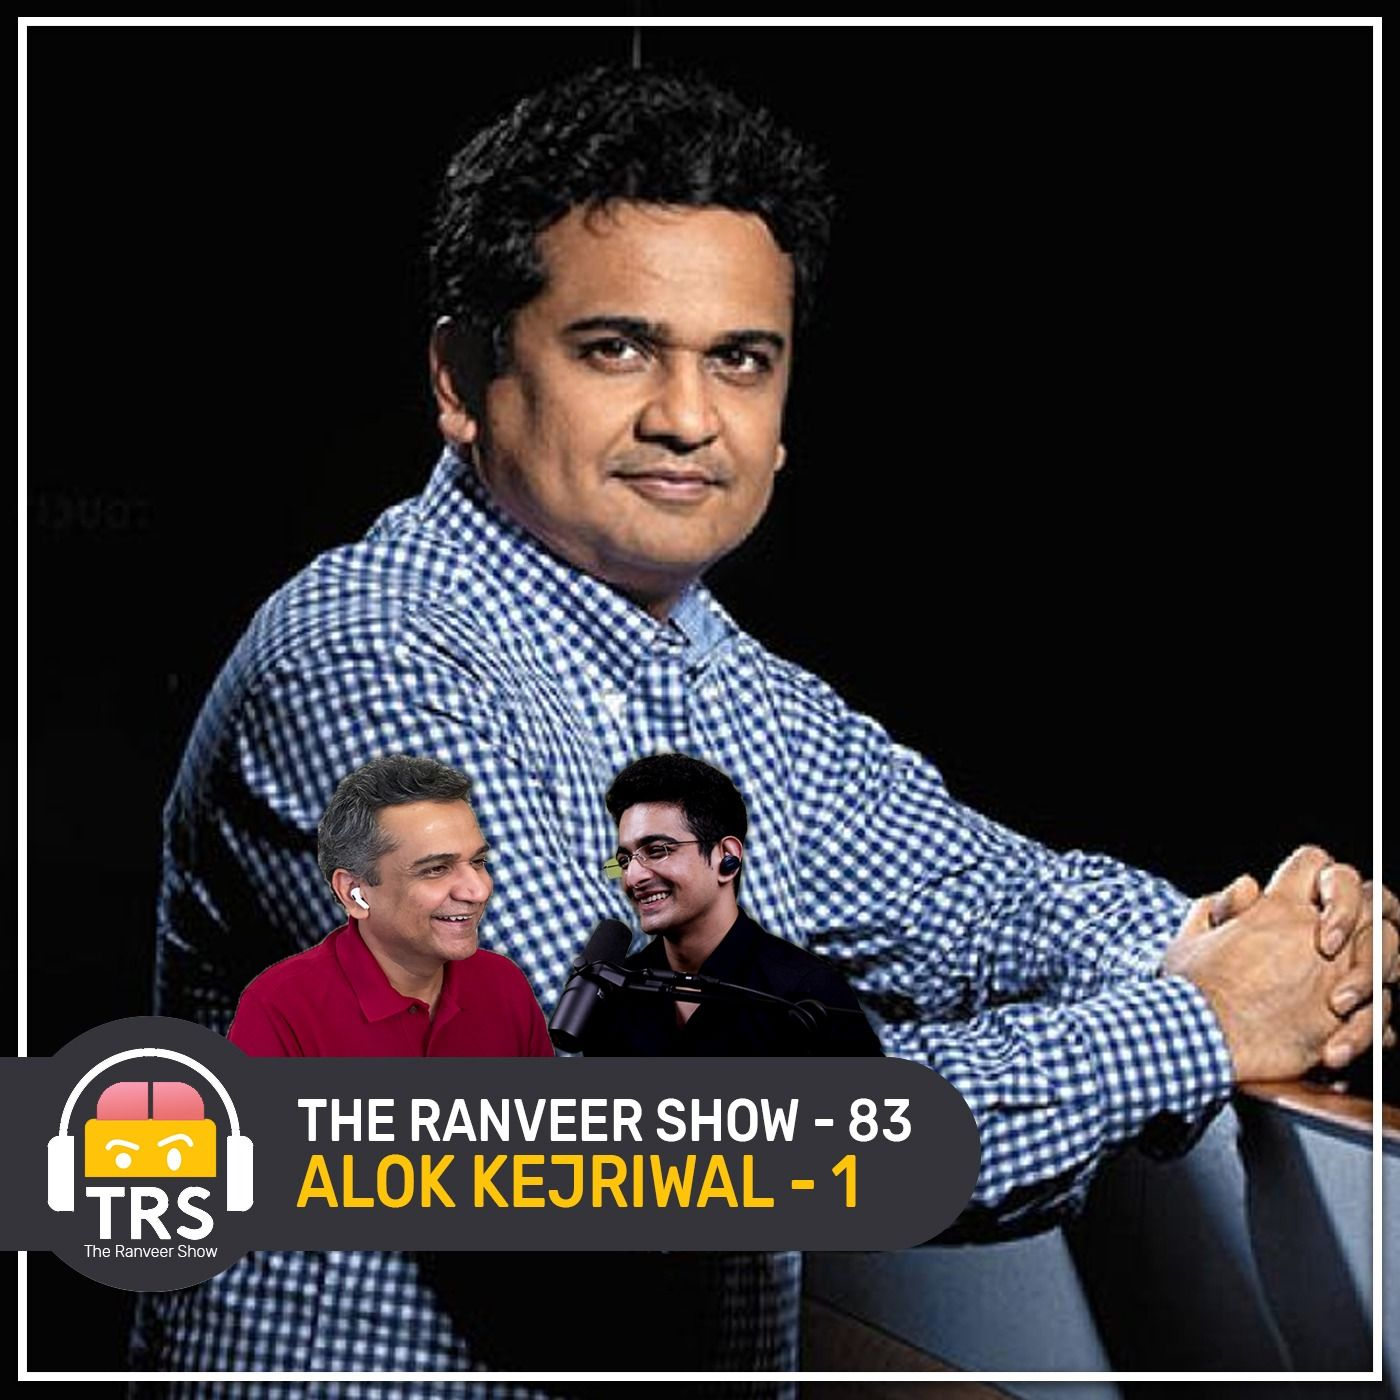 Alok Kejriwal On Indian Gaming, Learnings From China & Spiritual Growth | The Ranveer Show 83